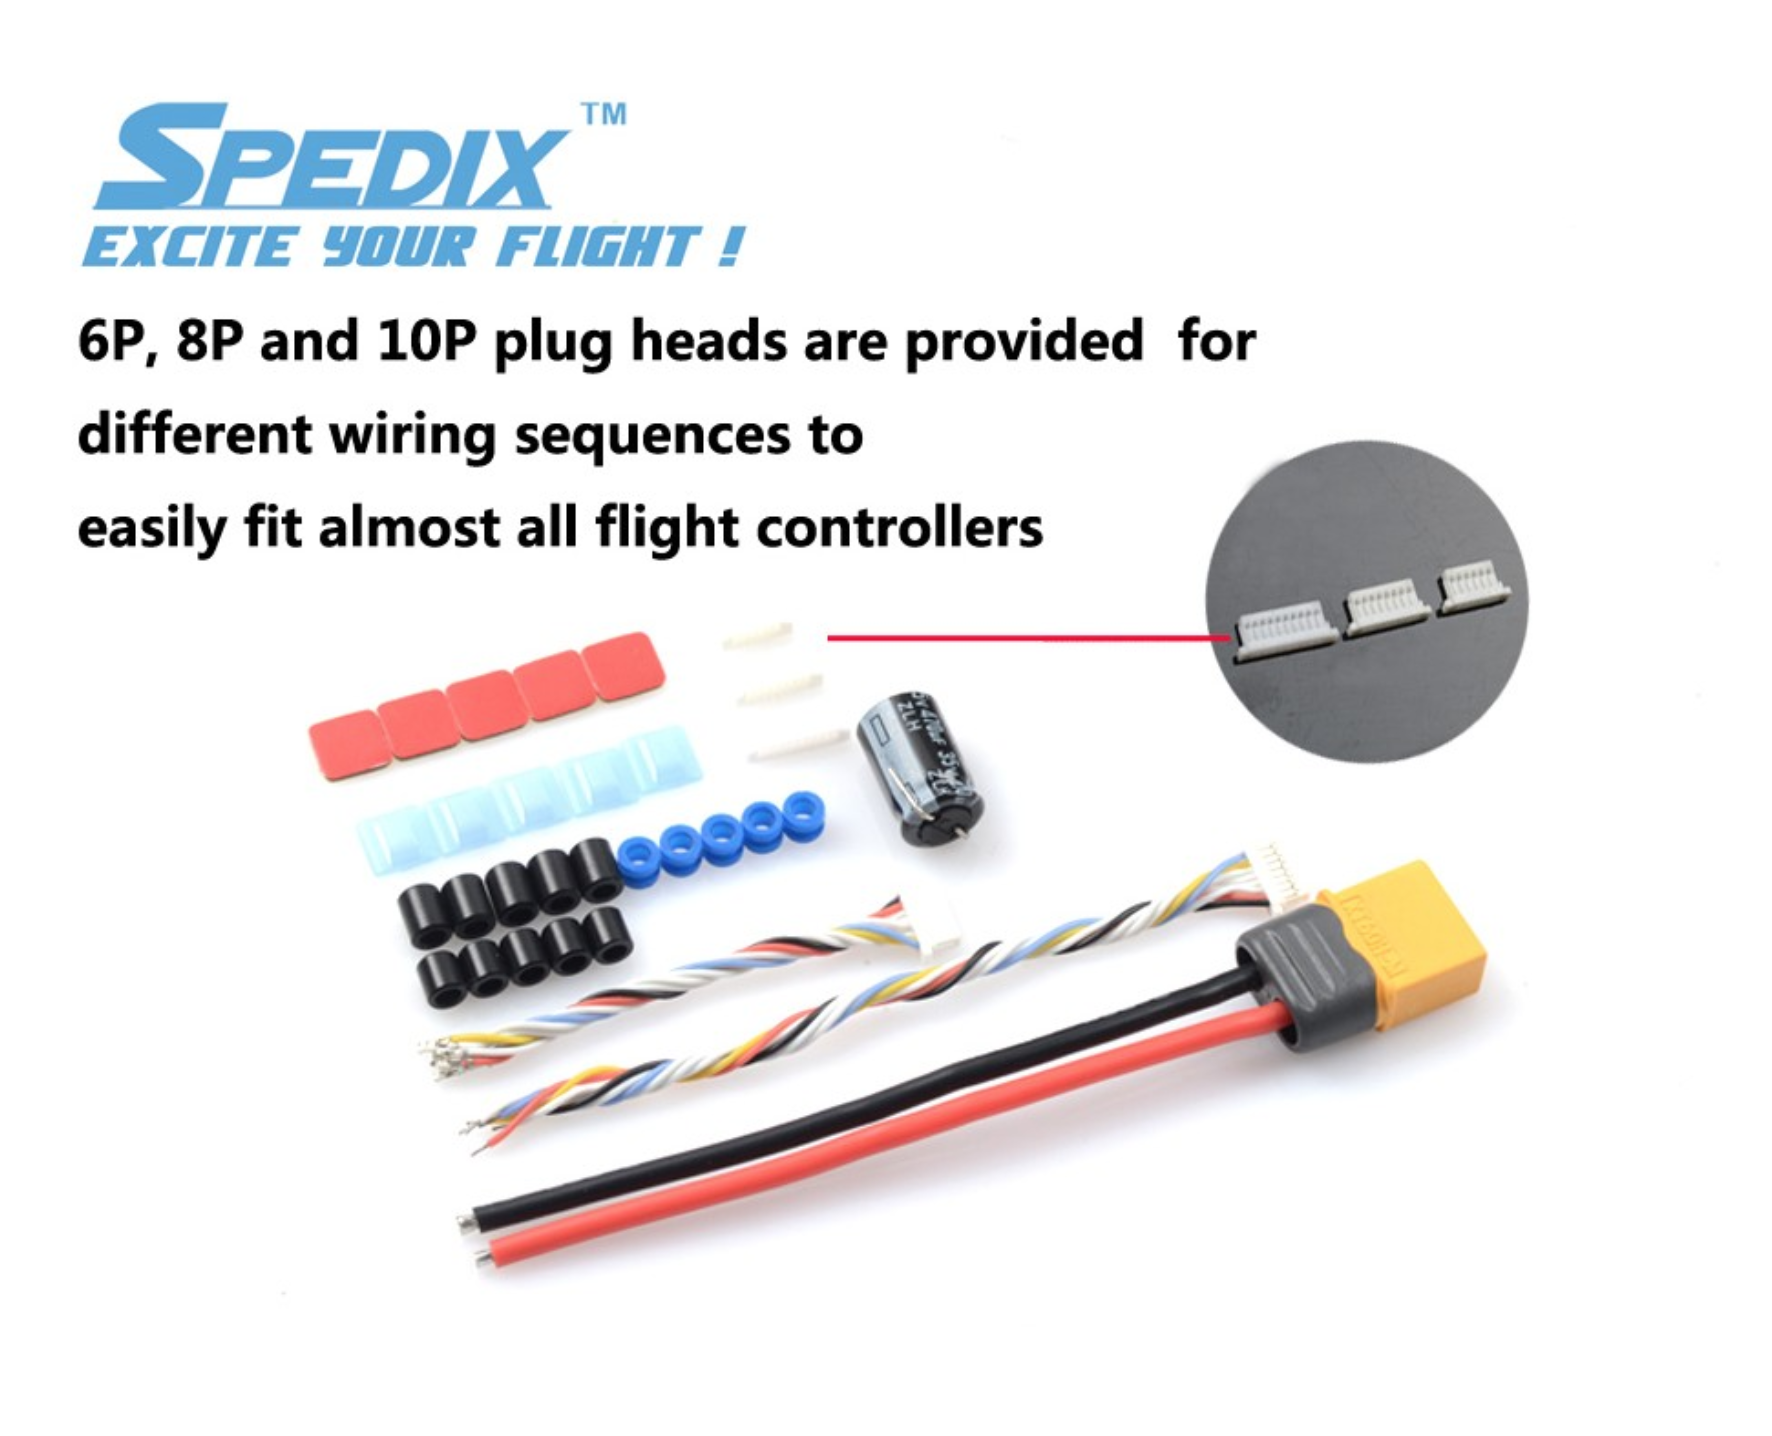 Spedix GS40F Mini 4 IN 1 ESC 20x20mm For FPV Racing Drones included inside